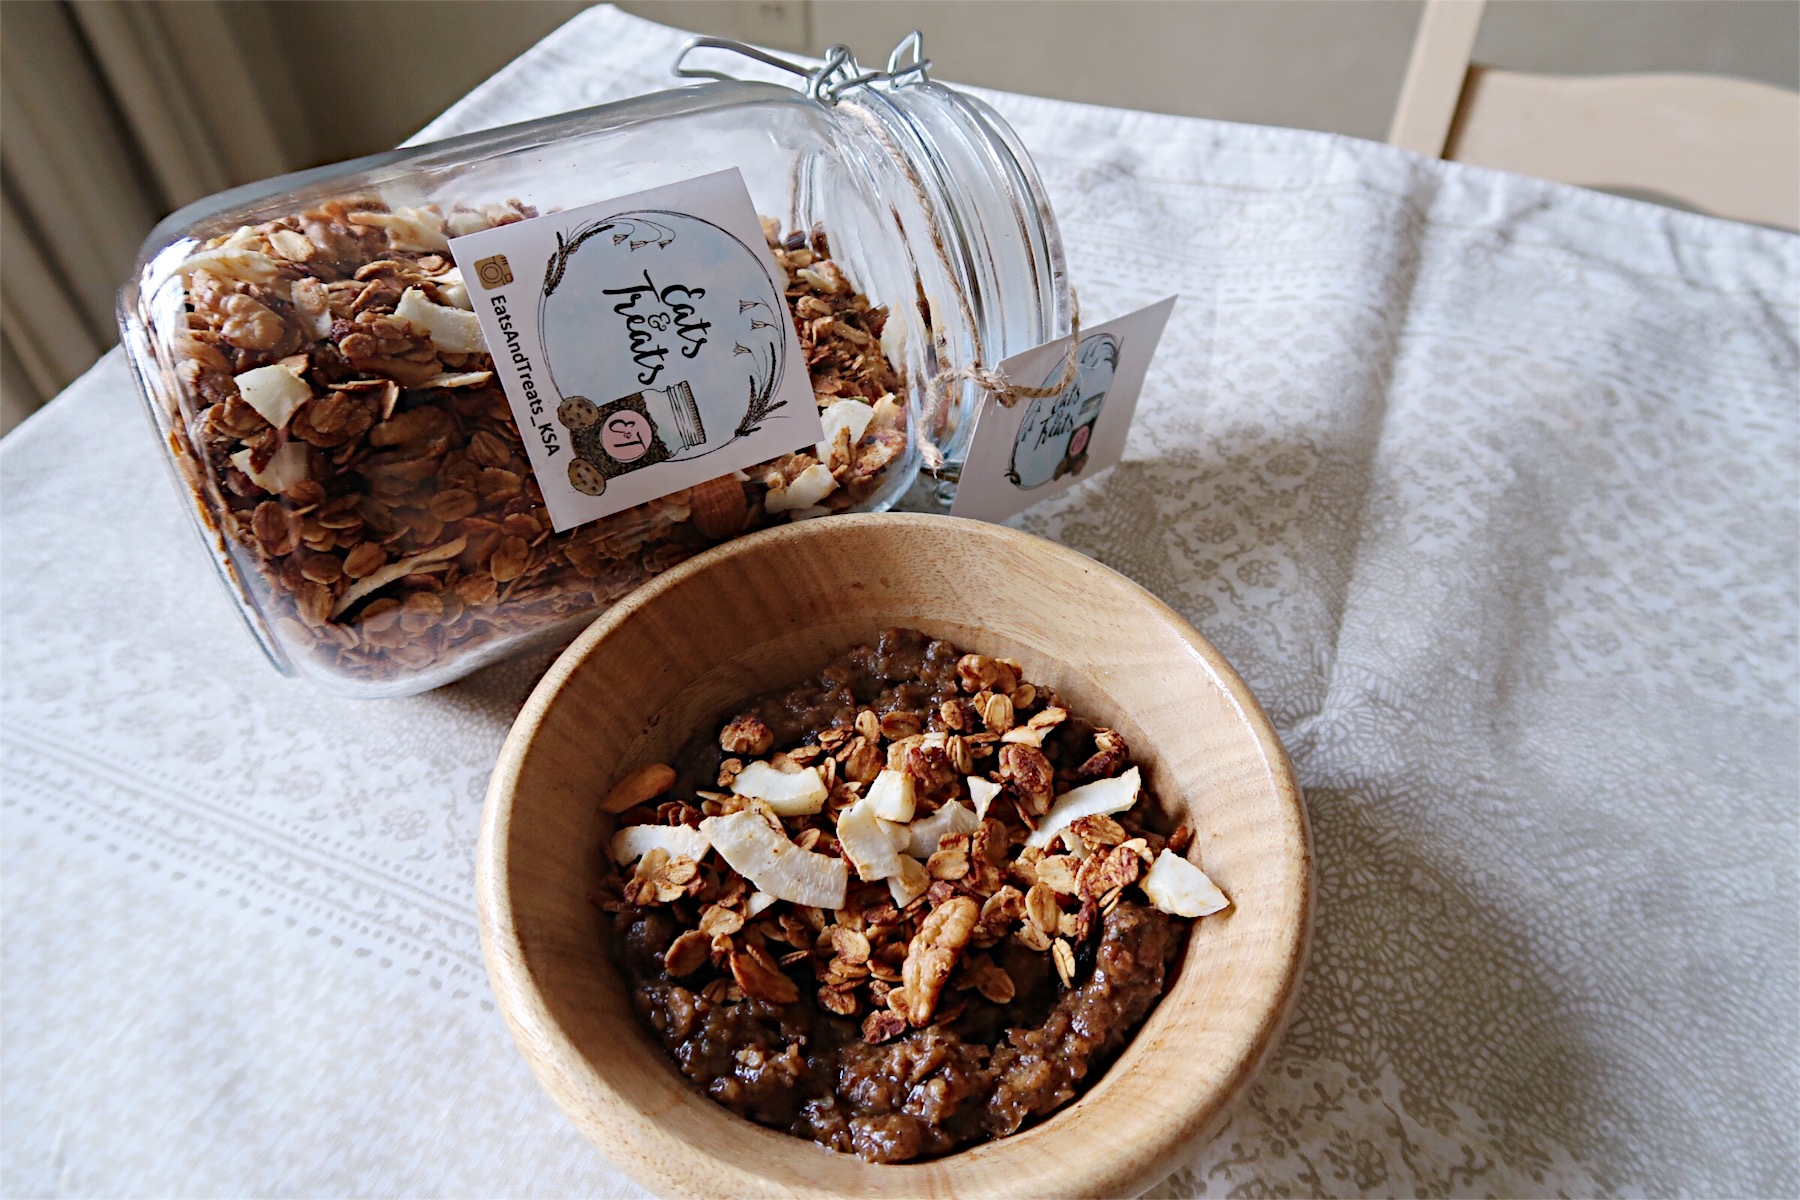 With pumpkin granola from Eats and Treats!